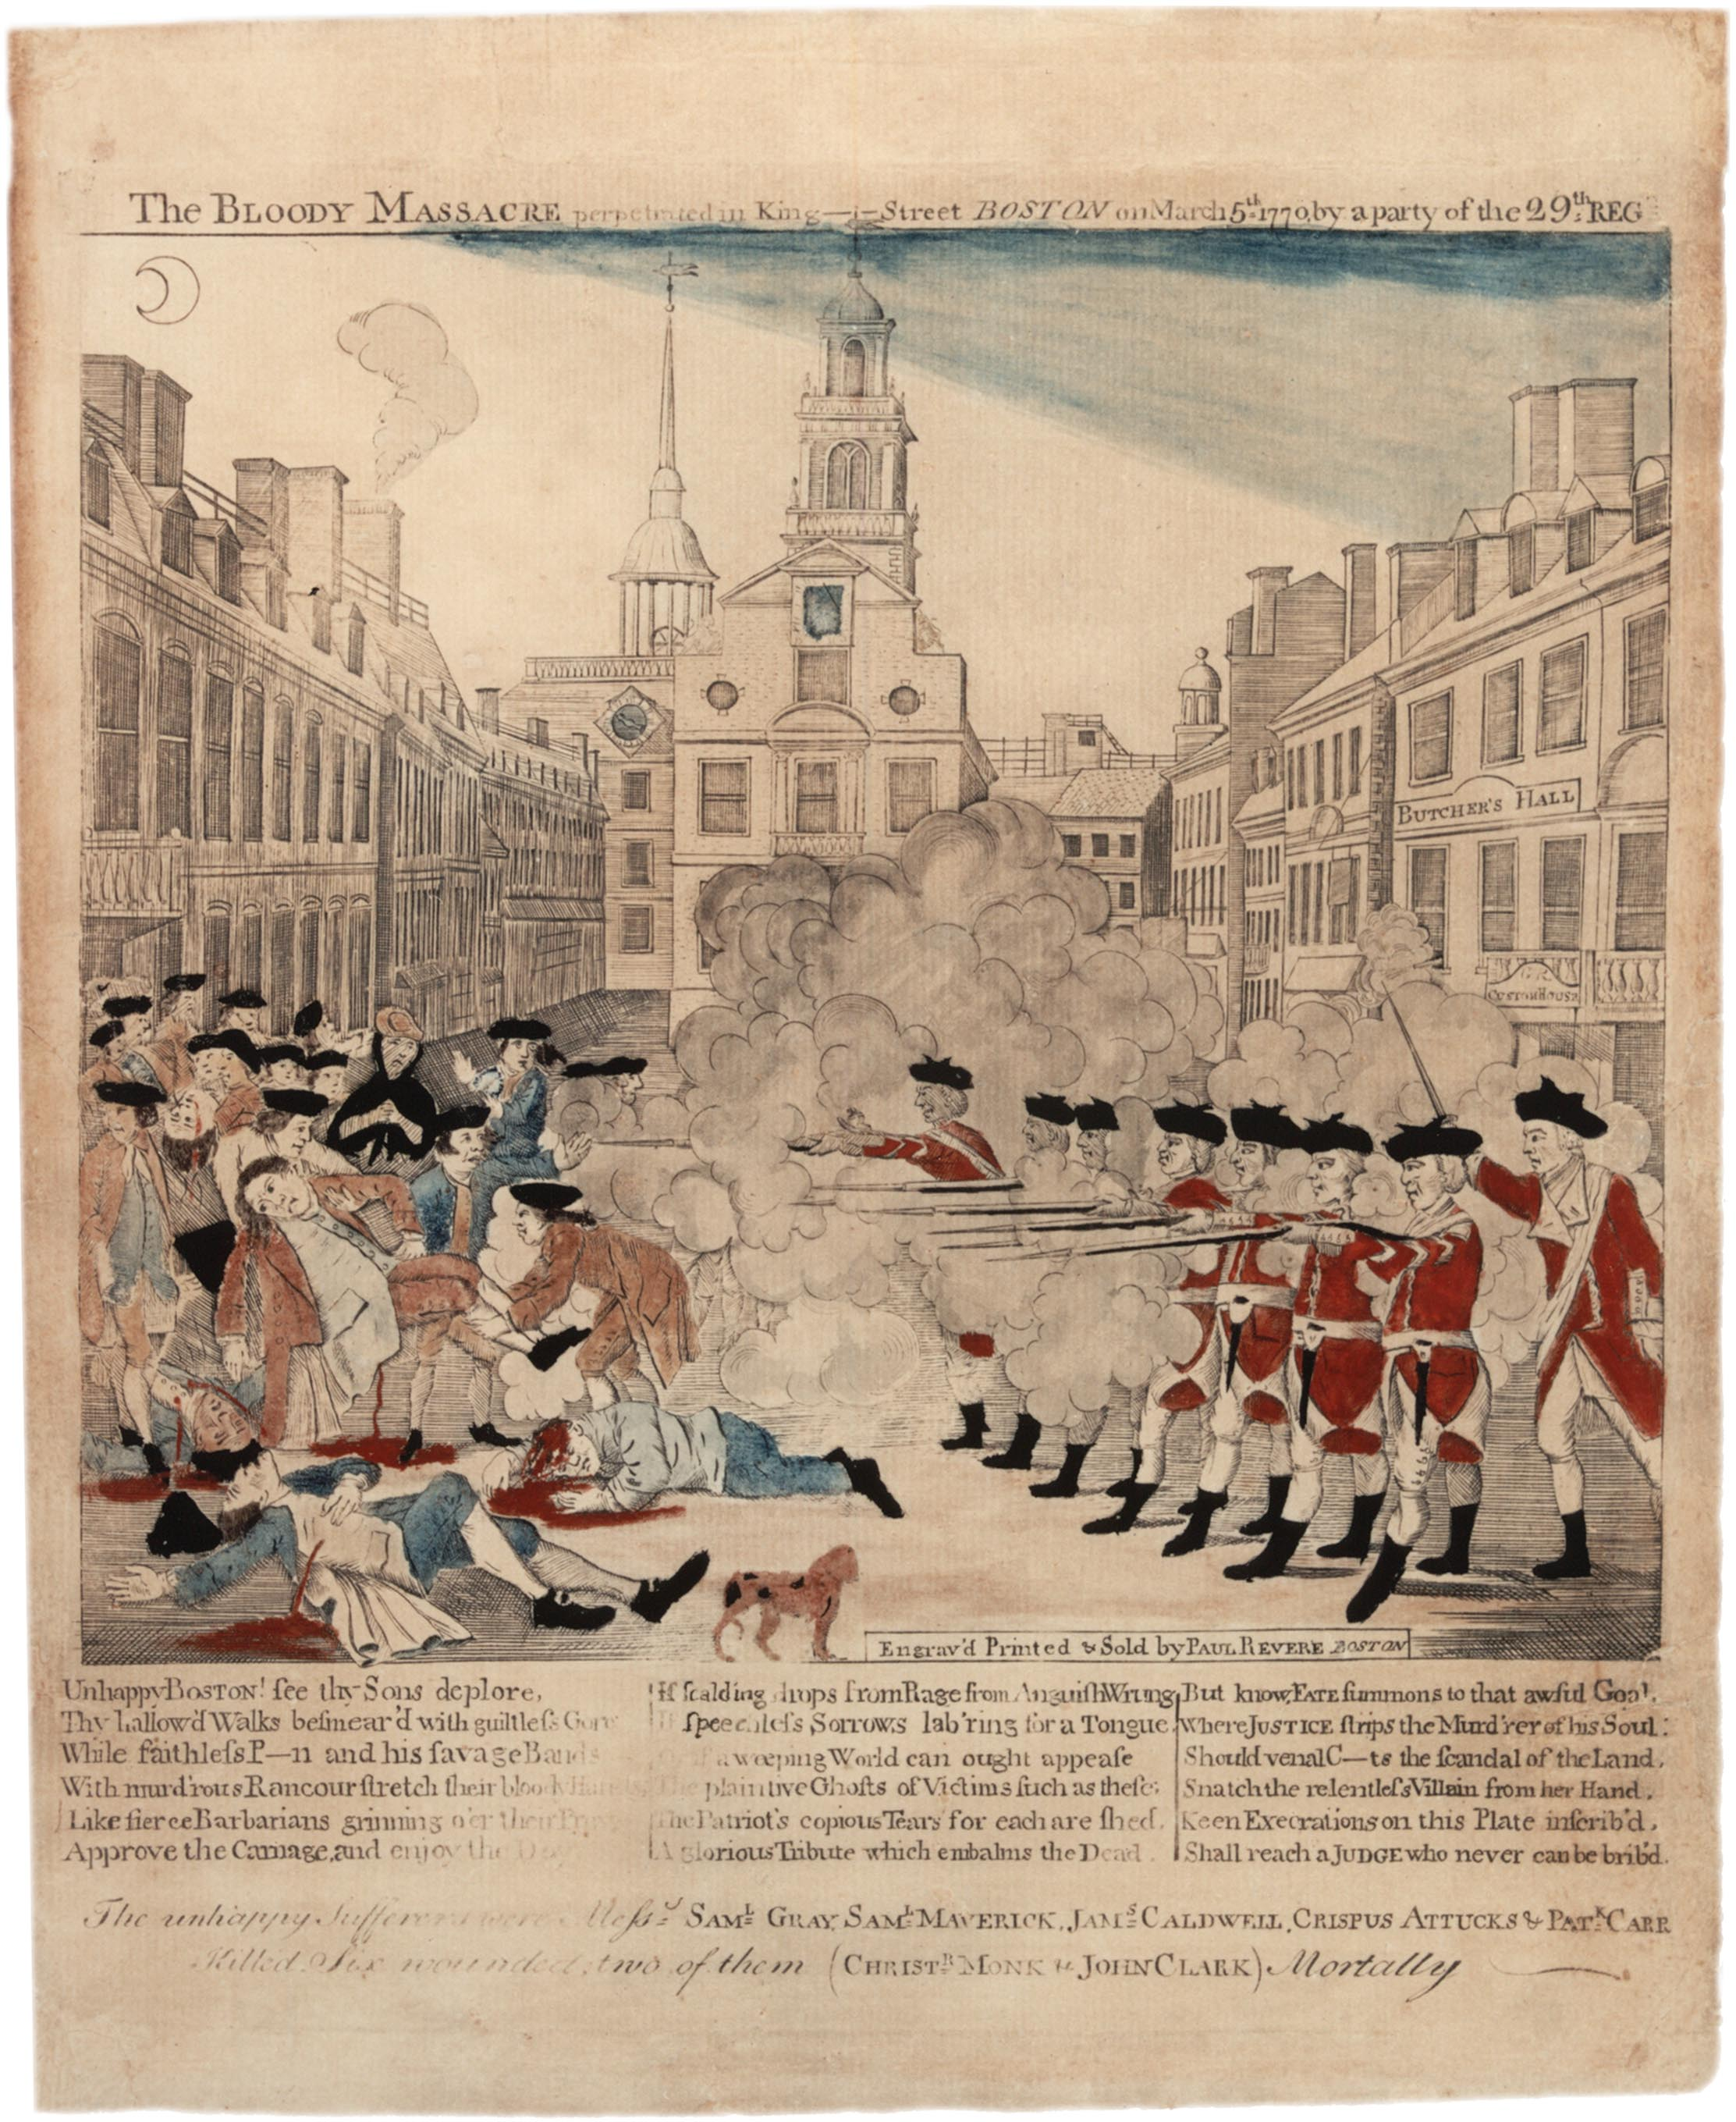 Paul Revere's engraving, depicting The Boston Massacre, was one of the most effective pieces of propaganda in opposition to British rule of the American colonies.